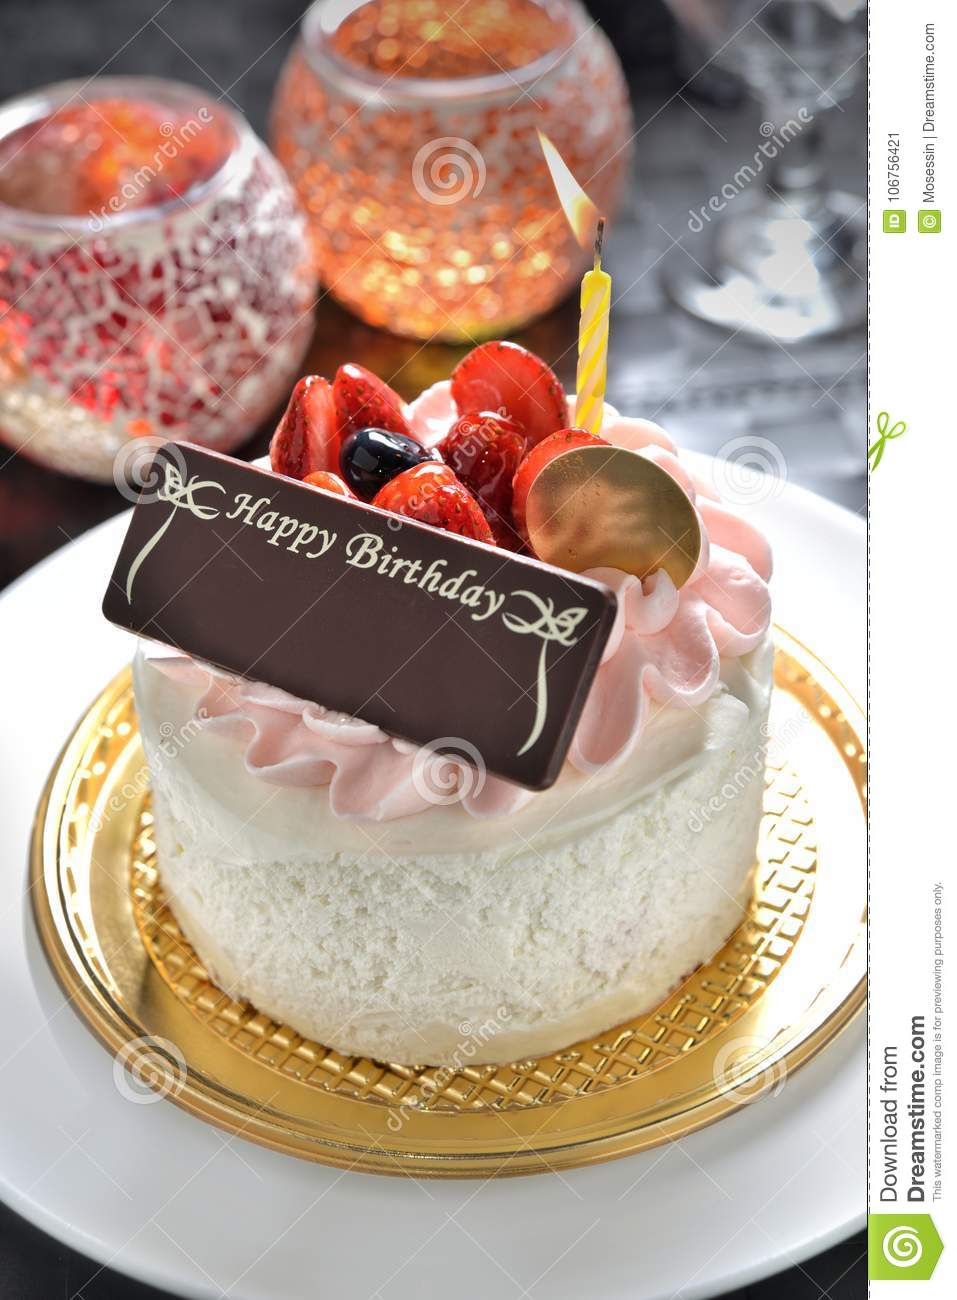 14 699 Birthday Tag Photos Free Royalty Free Stock Photos From Dreamstime